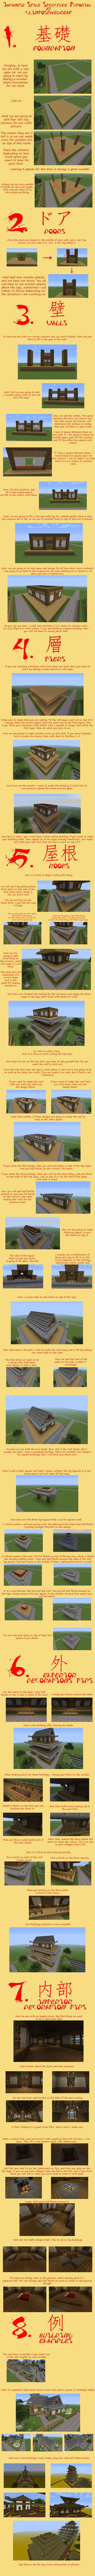 aesthetic lighting minecraft indoors torches tutorial. Japanese Structure For Minecraft House Aesthetic Lighting Indoors Torches Tutorial